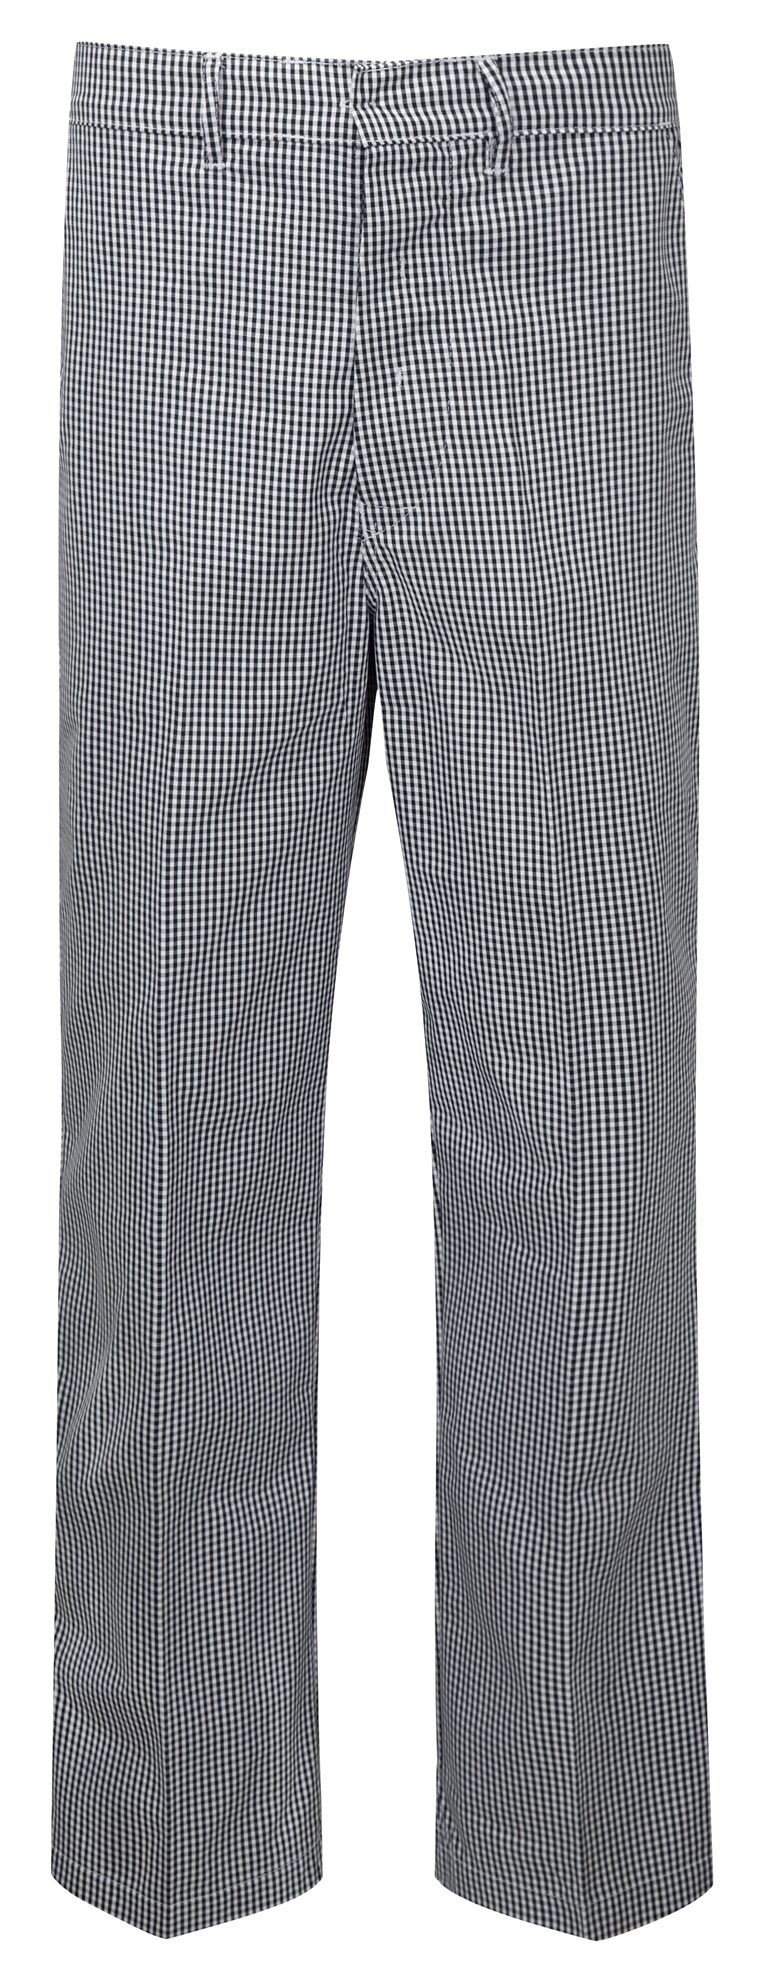 Picture of Unisex Chefs Gingham Trouser - Black/White